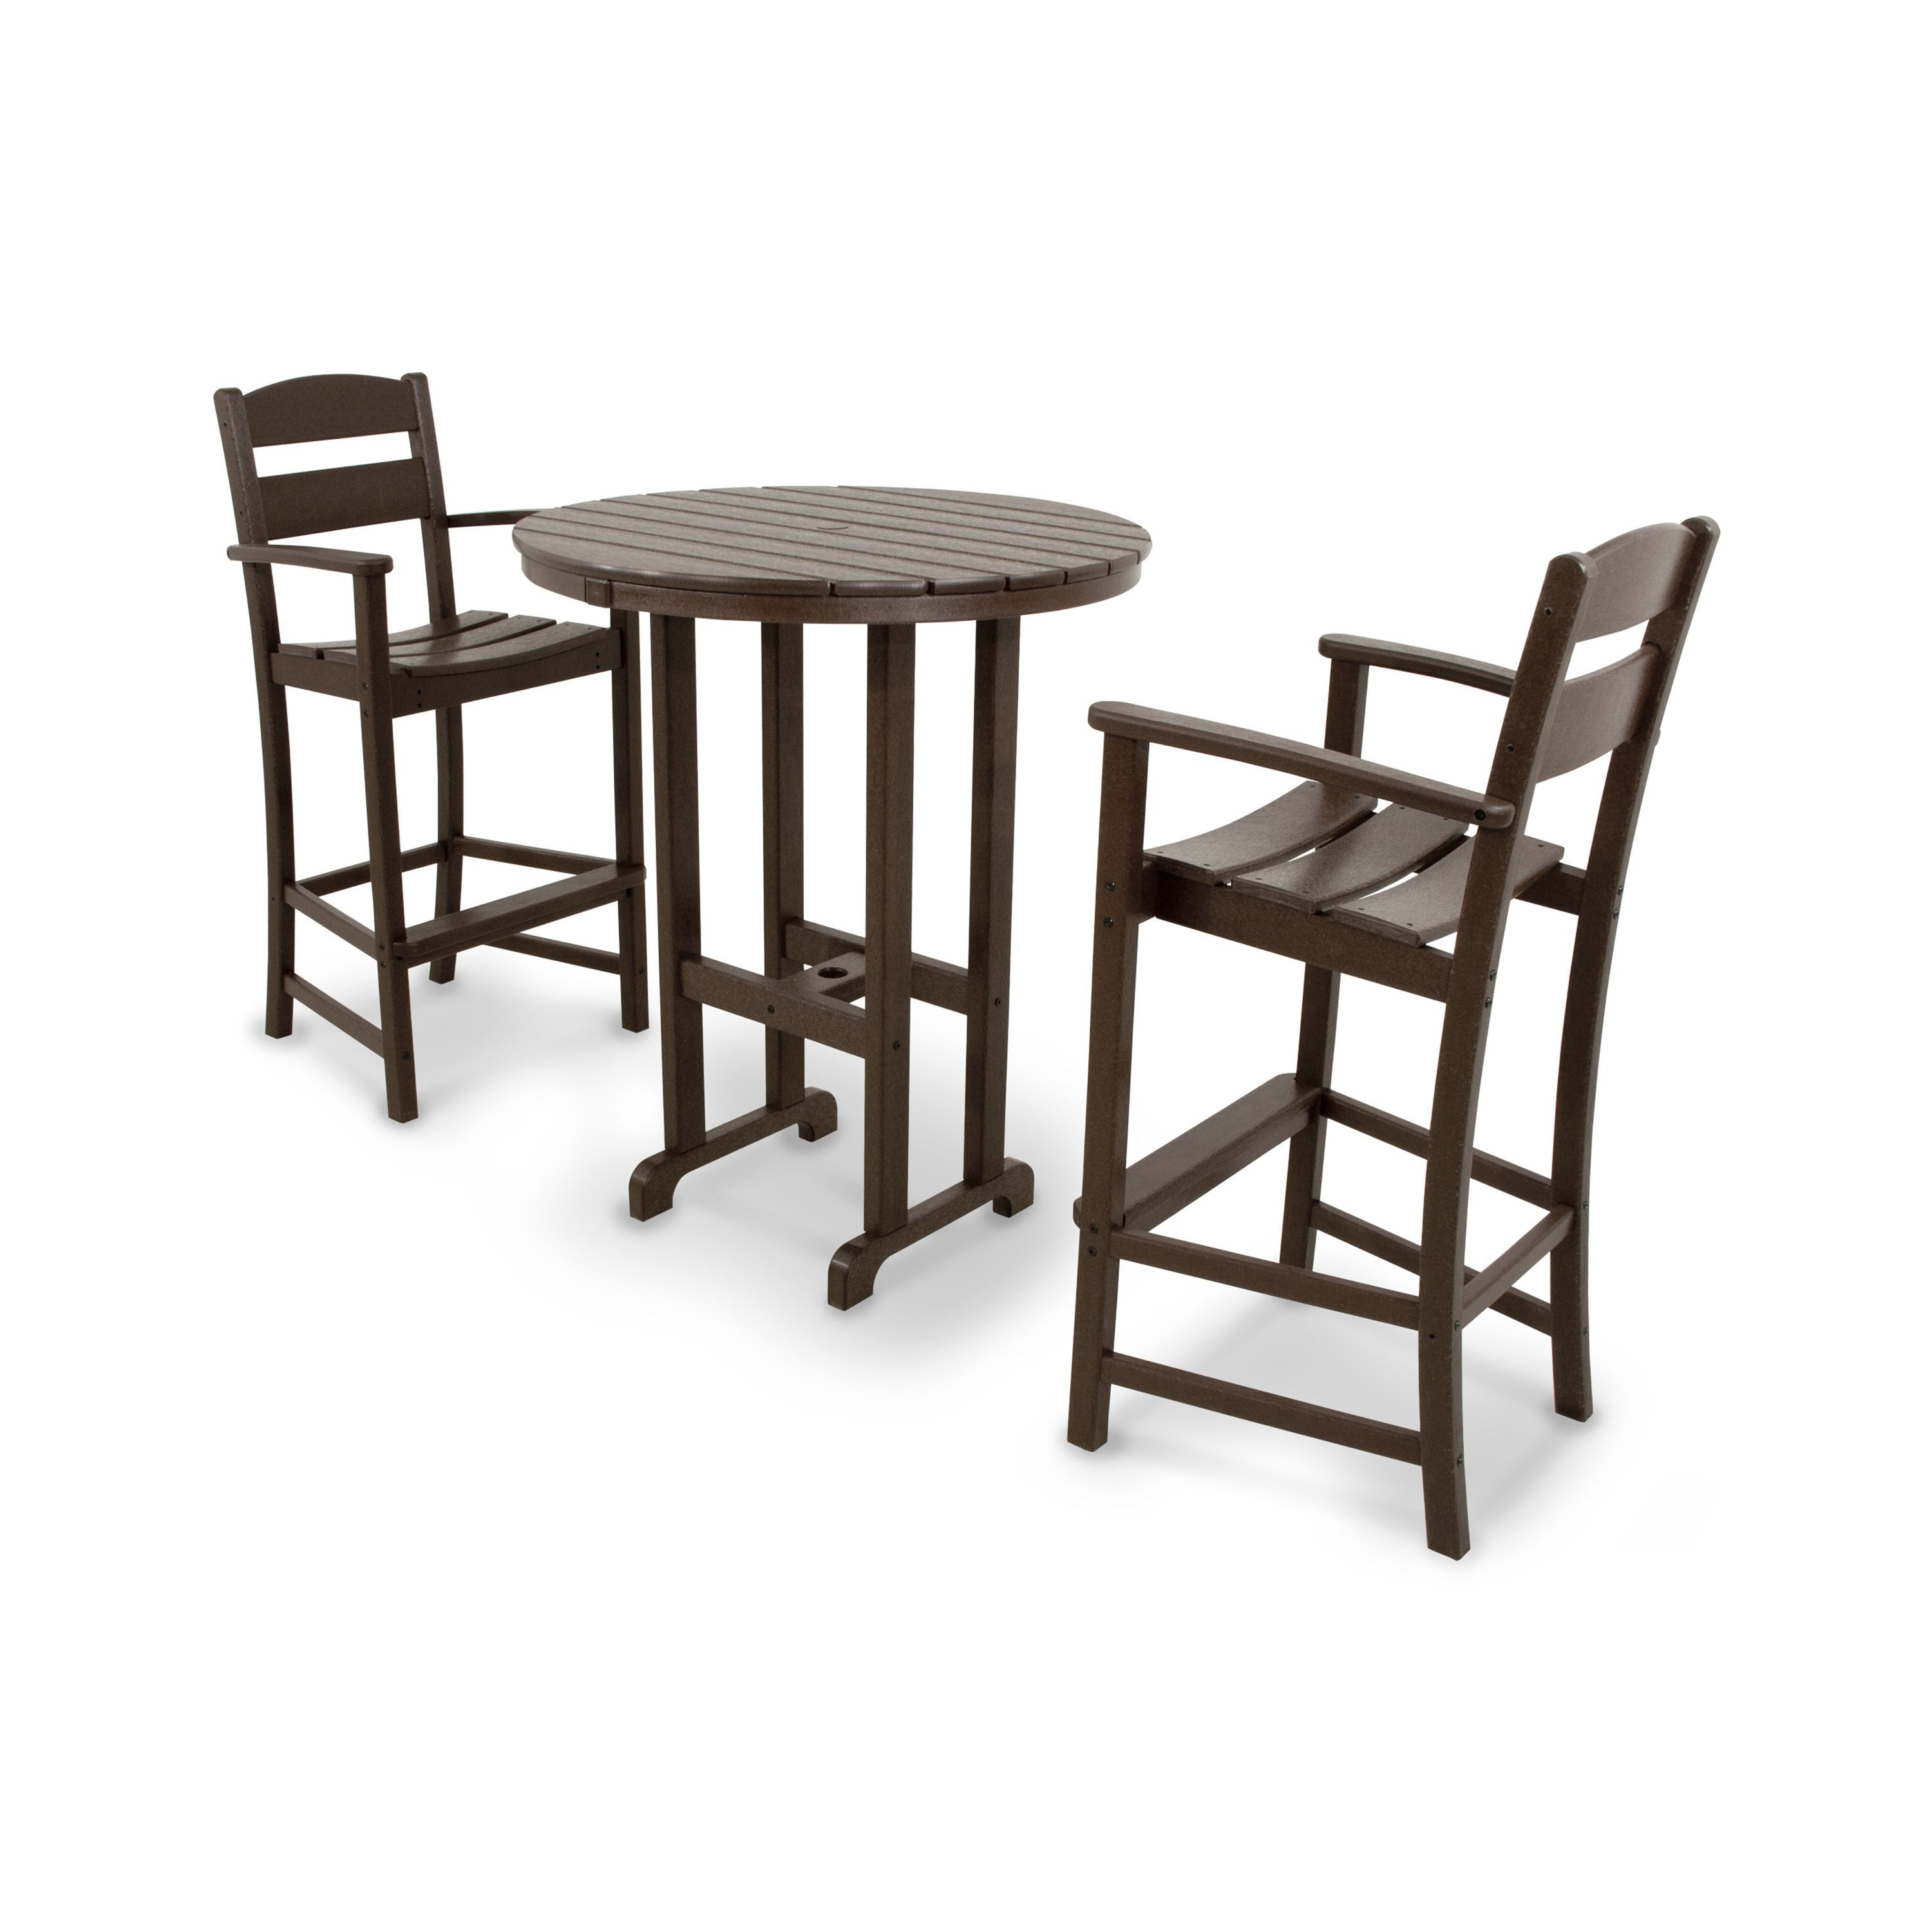 Ivy Terrace Clics 3 Piece Bar Set Black Patio Furniture Plastic